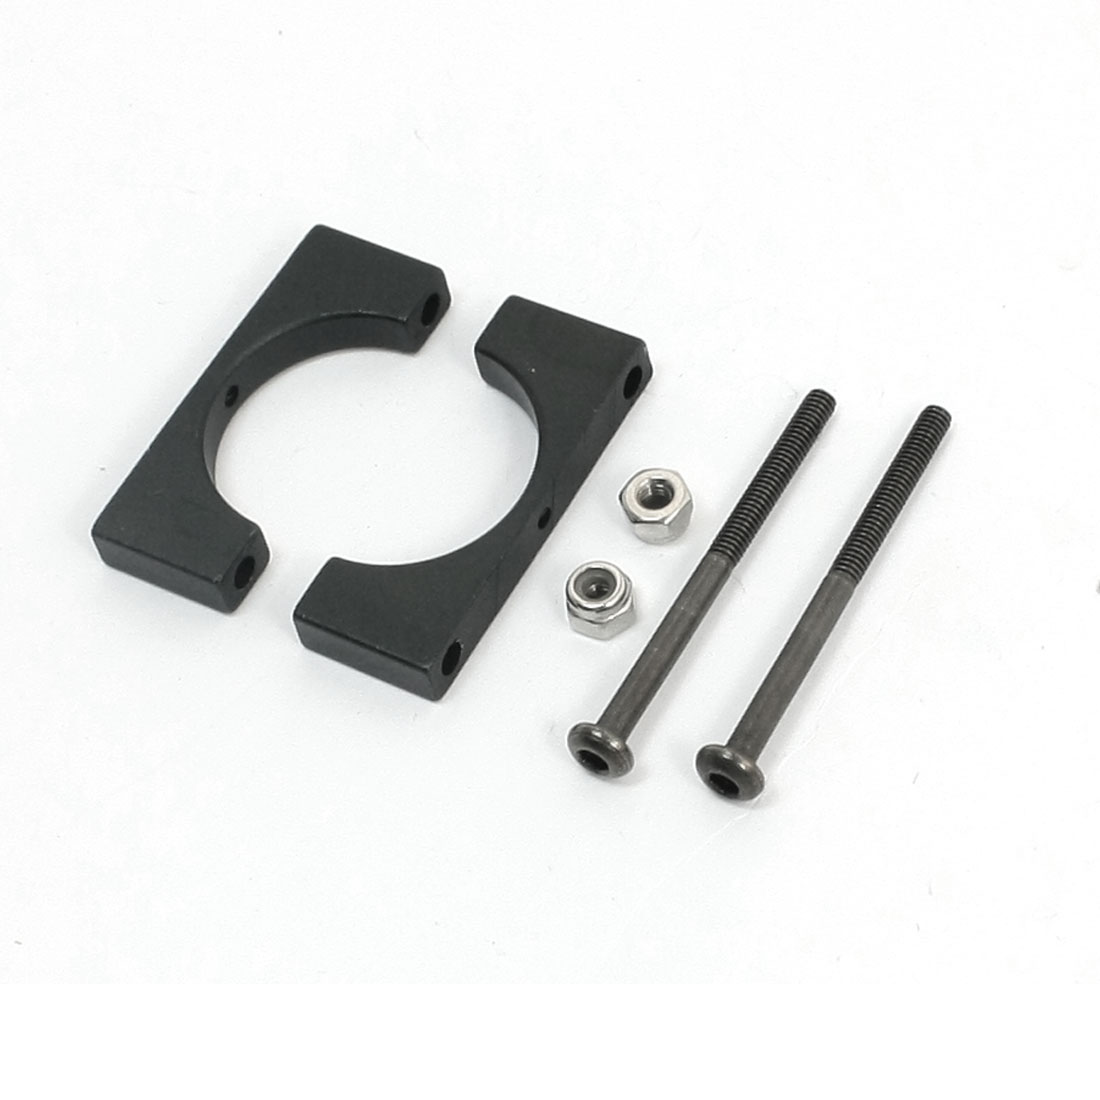 20mm Aluminum Clamp for Carbon Fiber Tube Quadcopter Hexacopter Octocopter